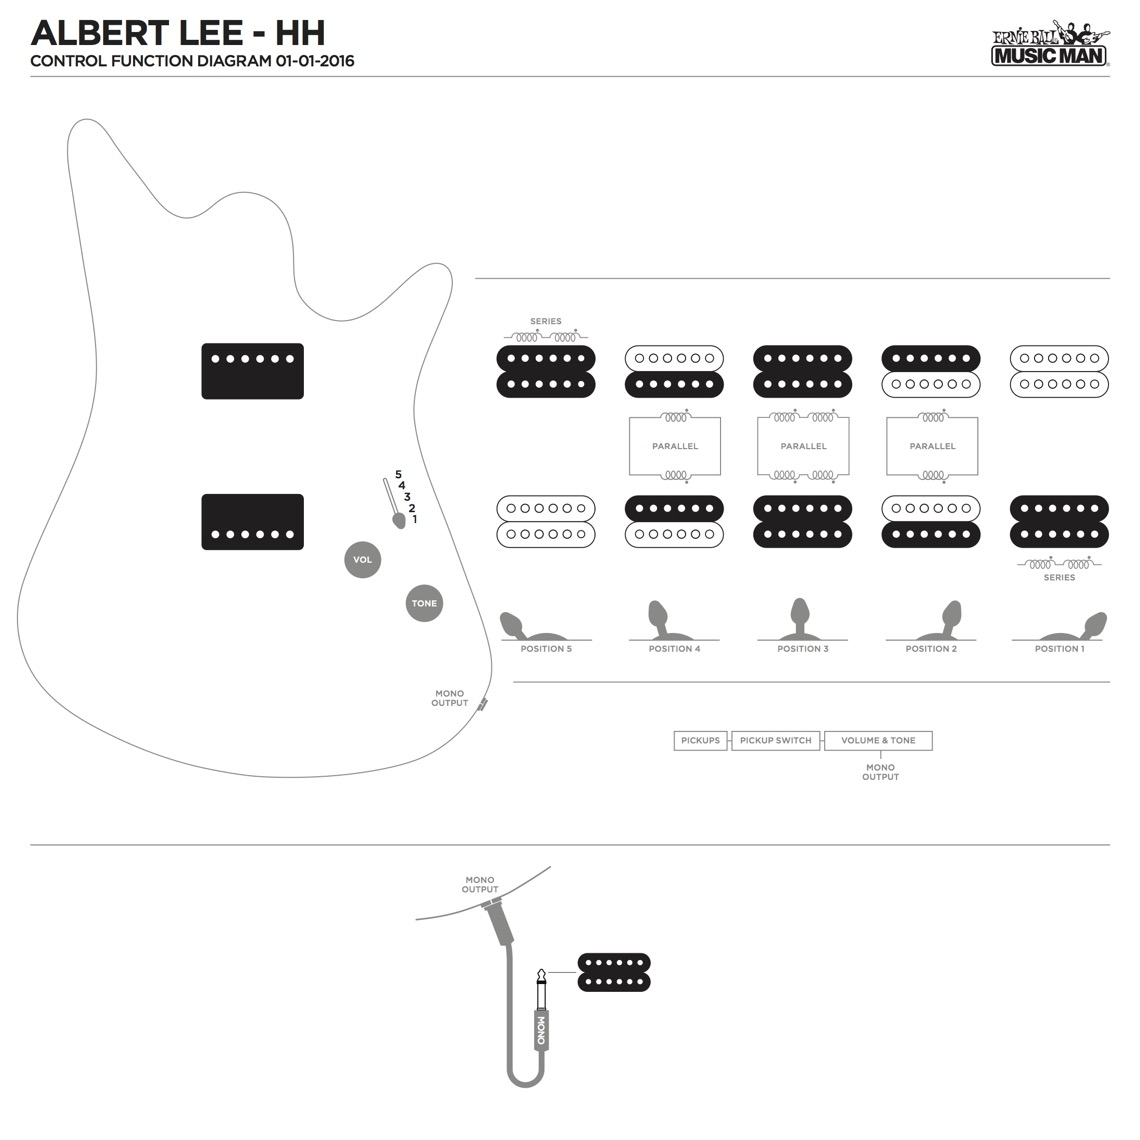 Hh Pickup Wiring Diagram Reinvent Your Ibanez Js100 Albert Lee Guitars Ernie Ball Music Man Rh Com 5 Way Strat Switch